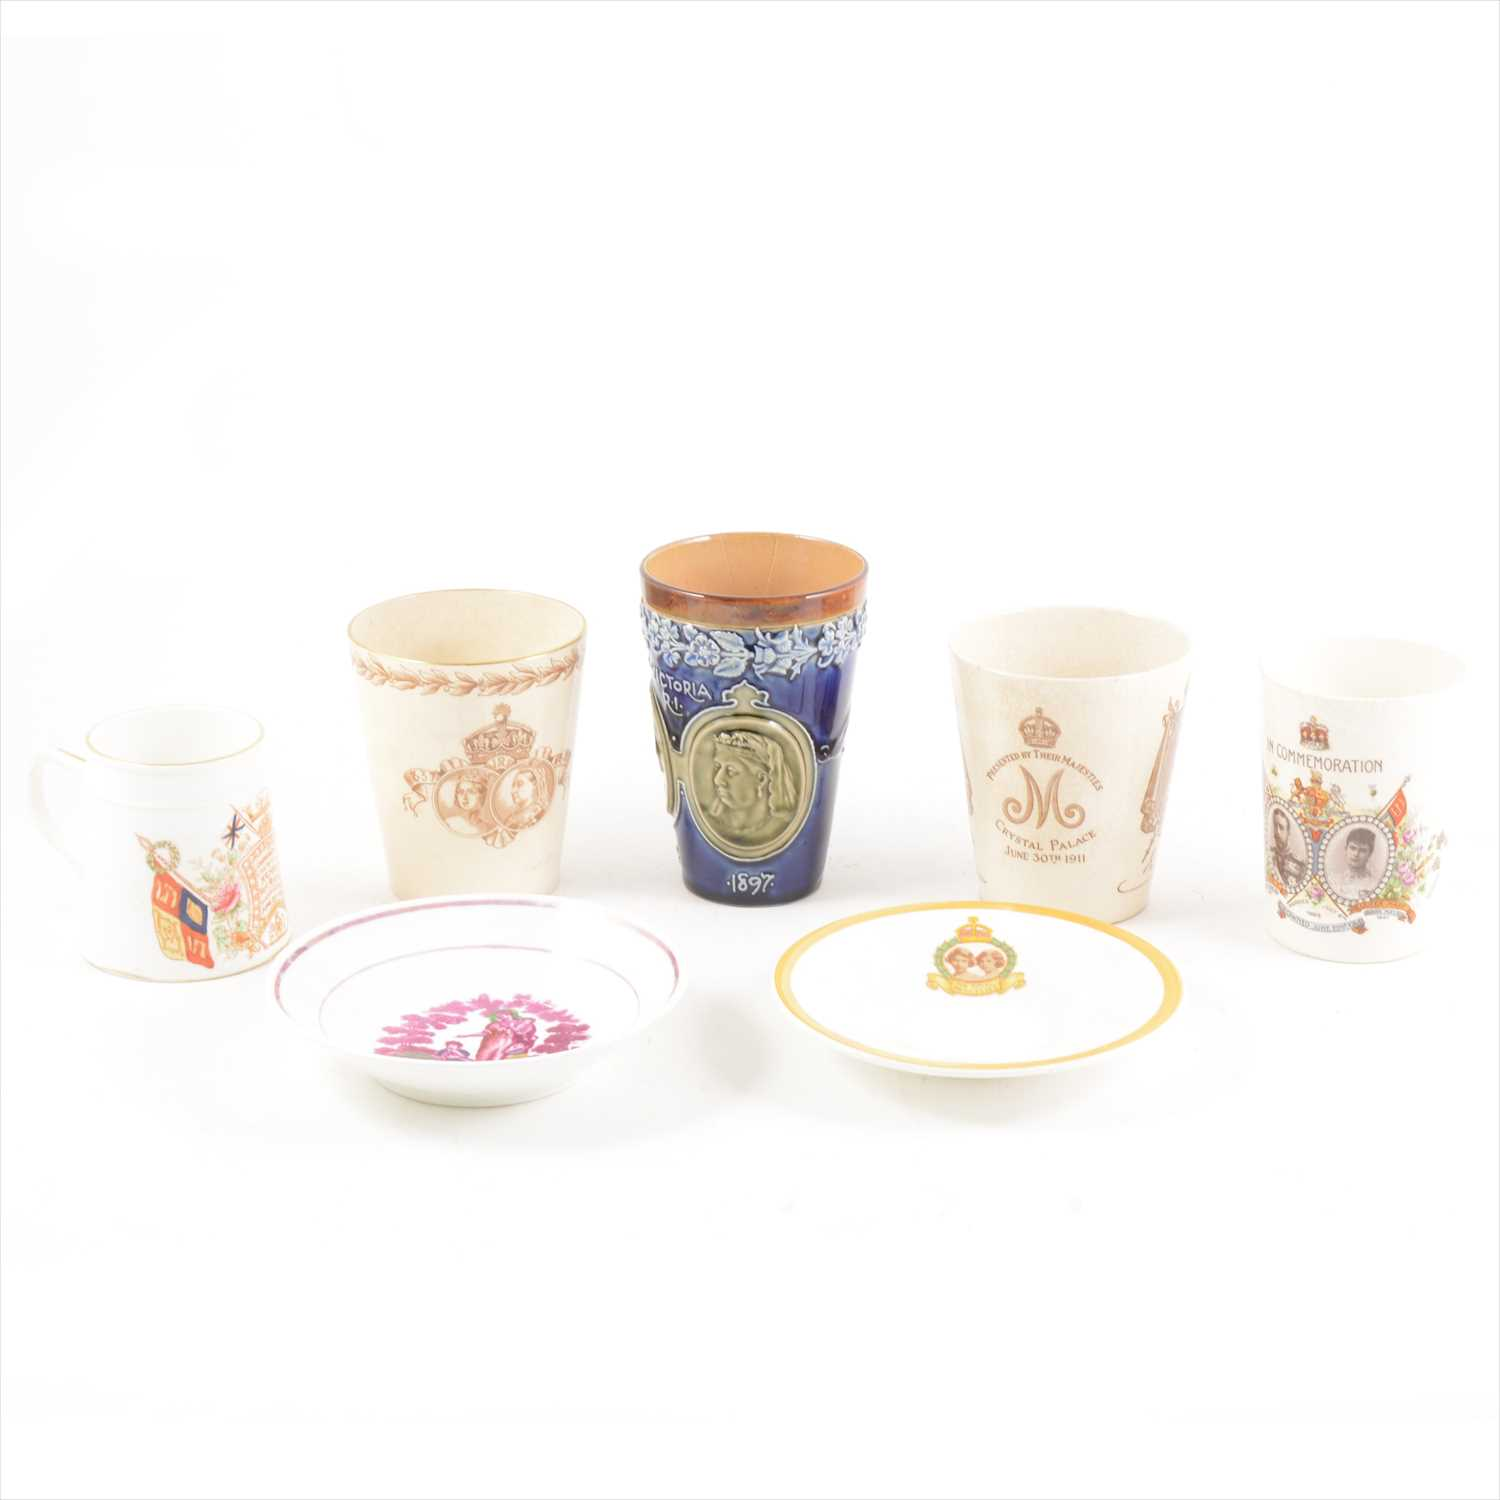 Lot 41-Doulton commemorative beakers and mugs